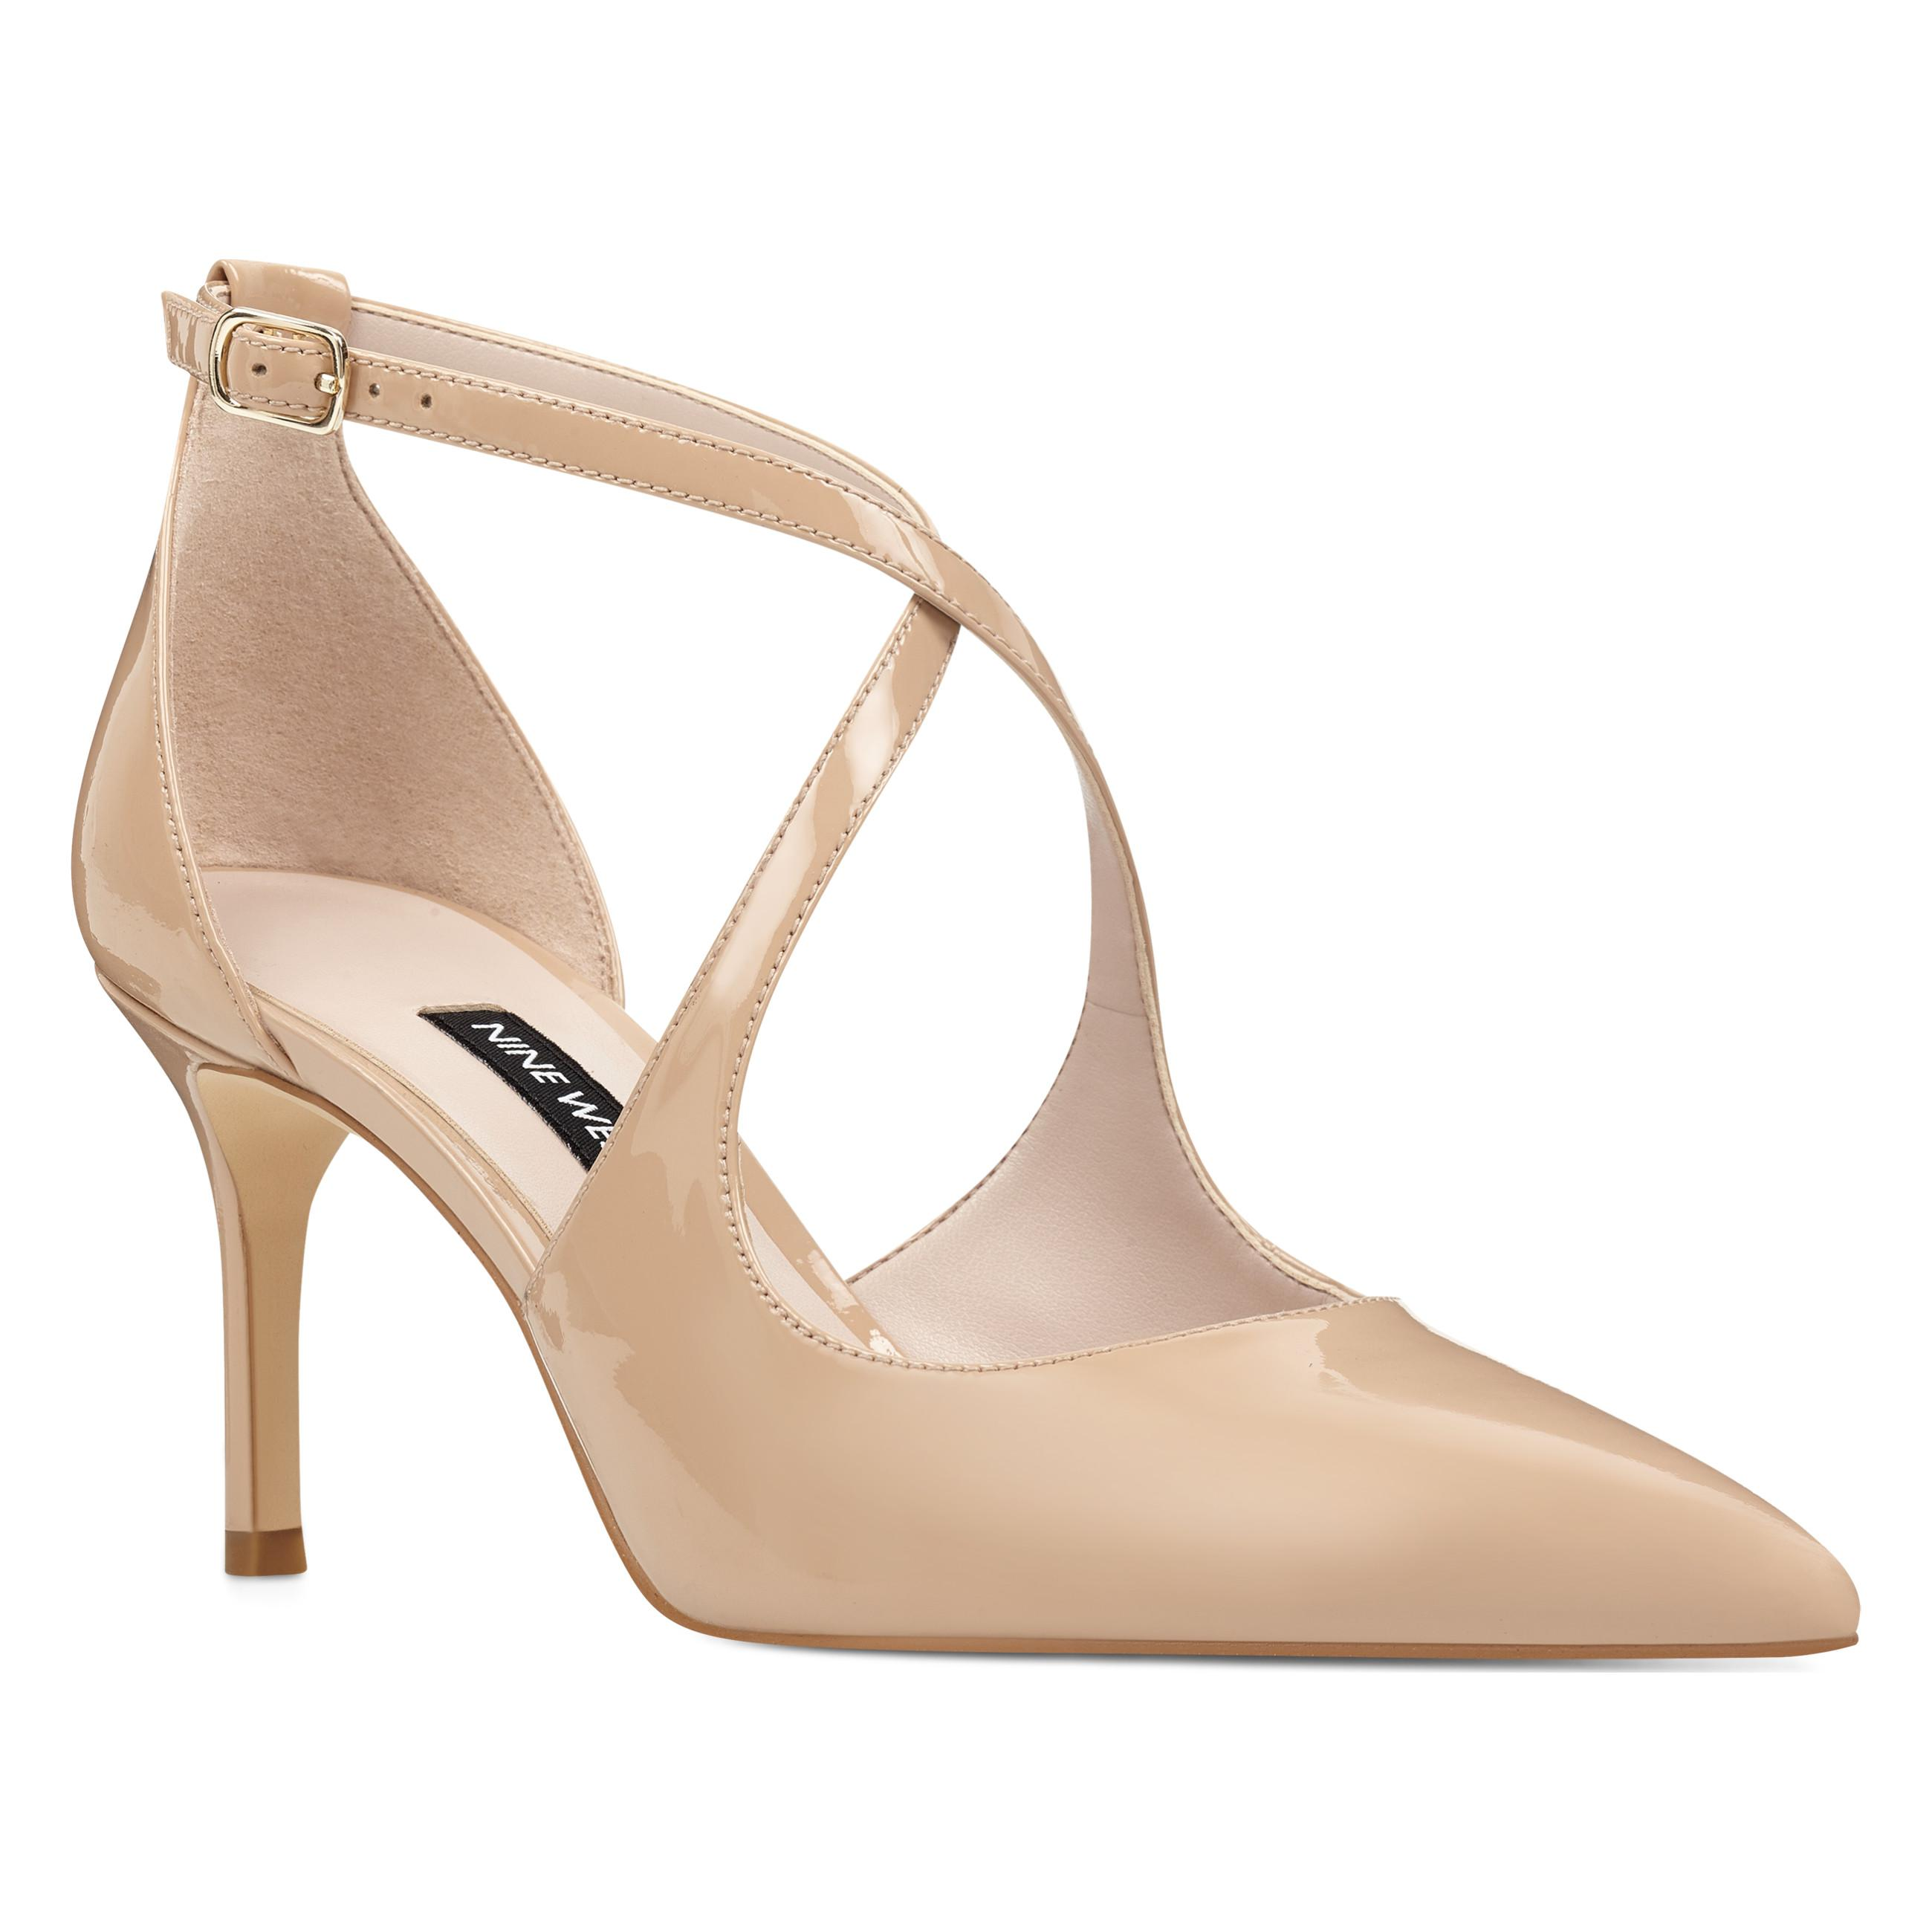 5d5d09b0f7 Nine West Micaela Strappy Pumps in Natural - Lyst